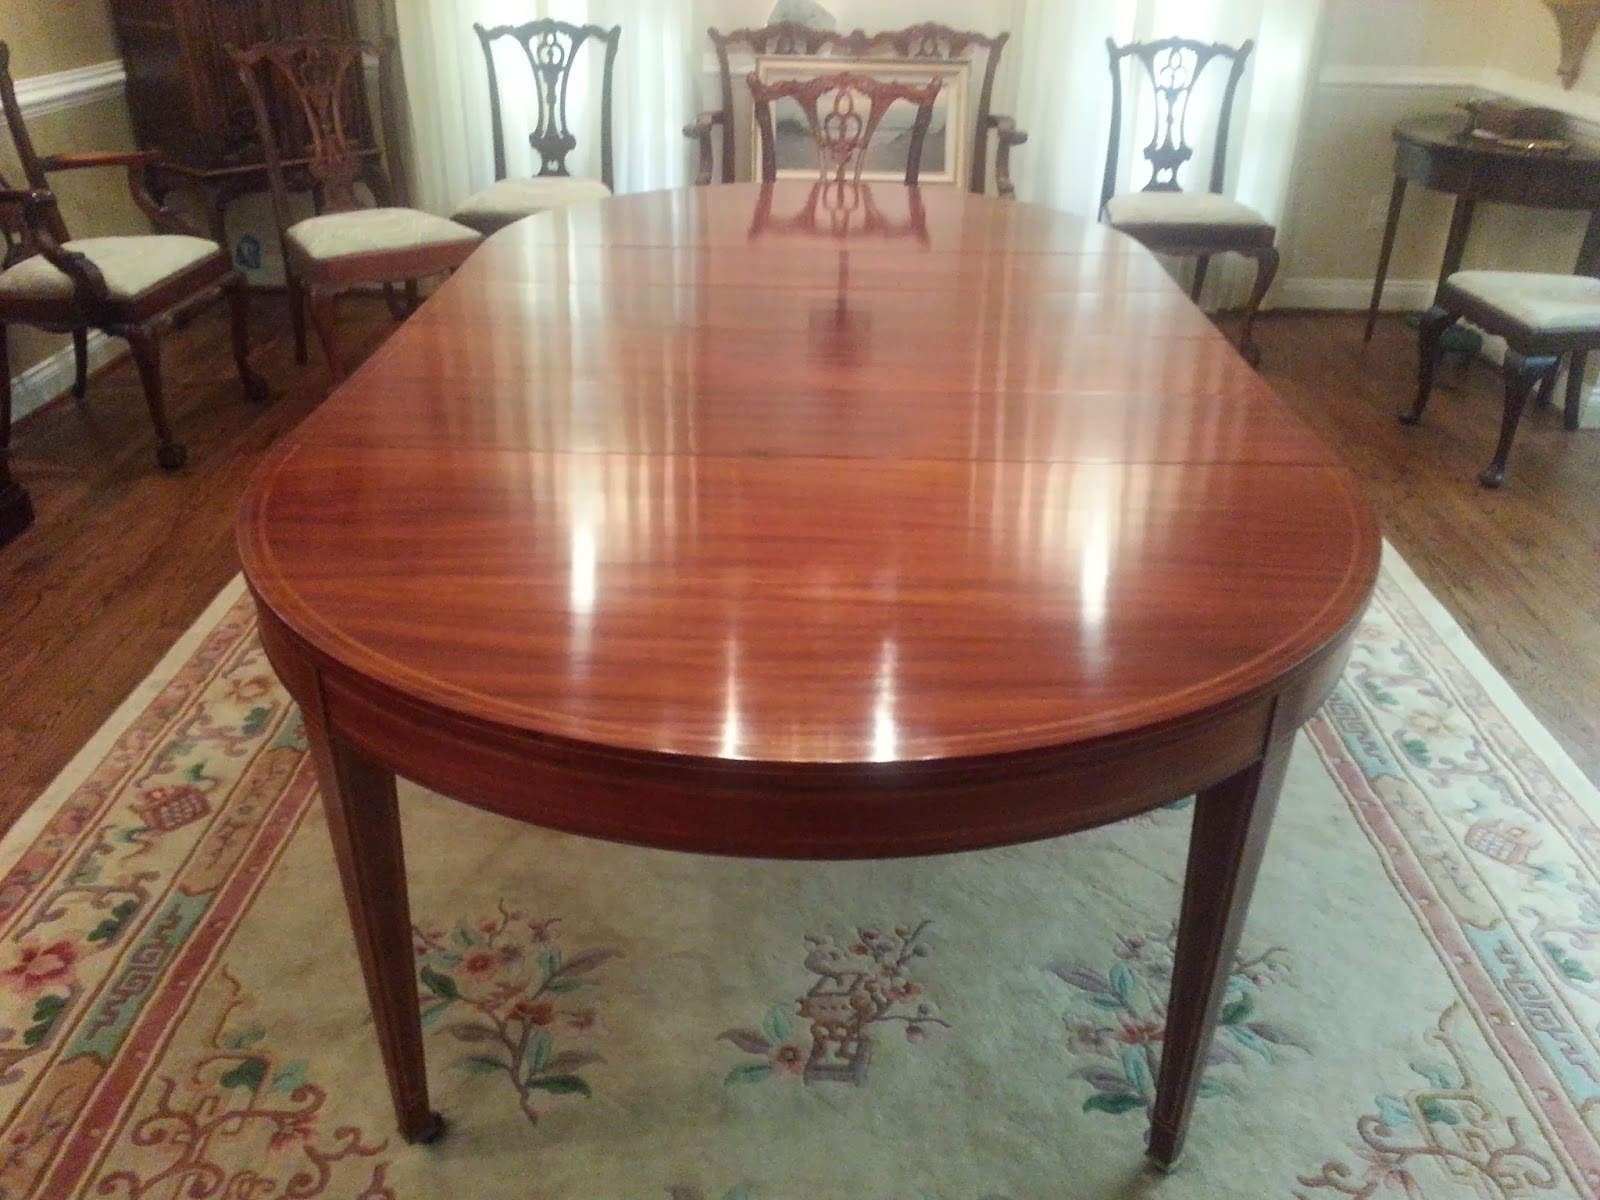 Mahogany Dining Room Table With Tulip Wood Banding (Ca. 1920)